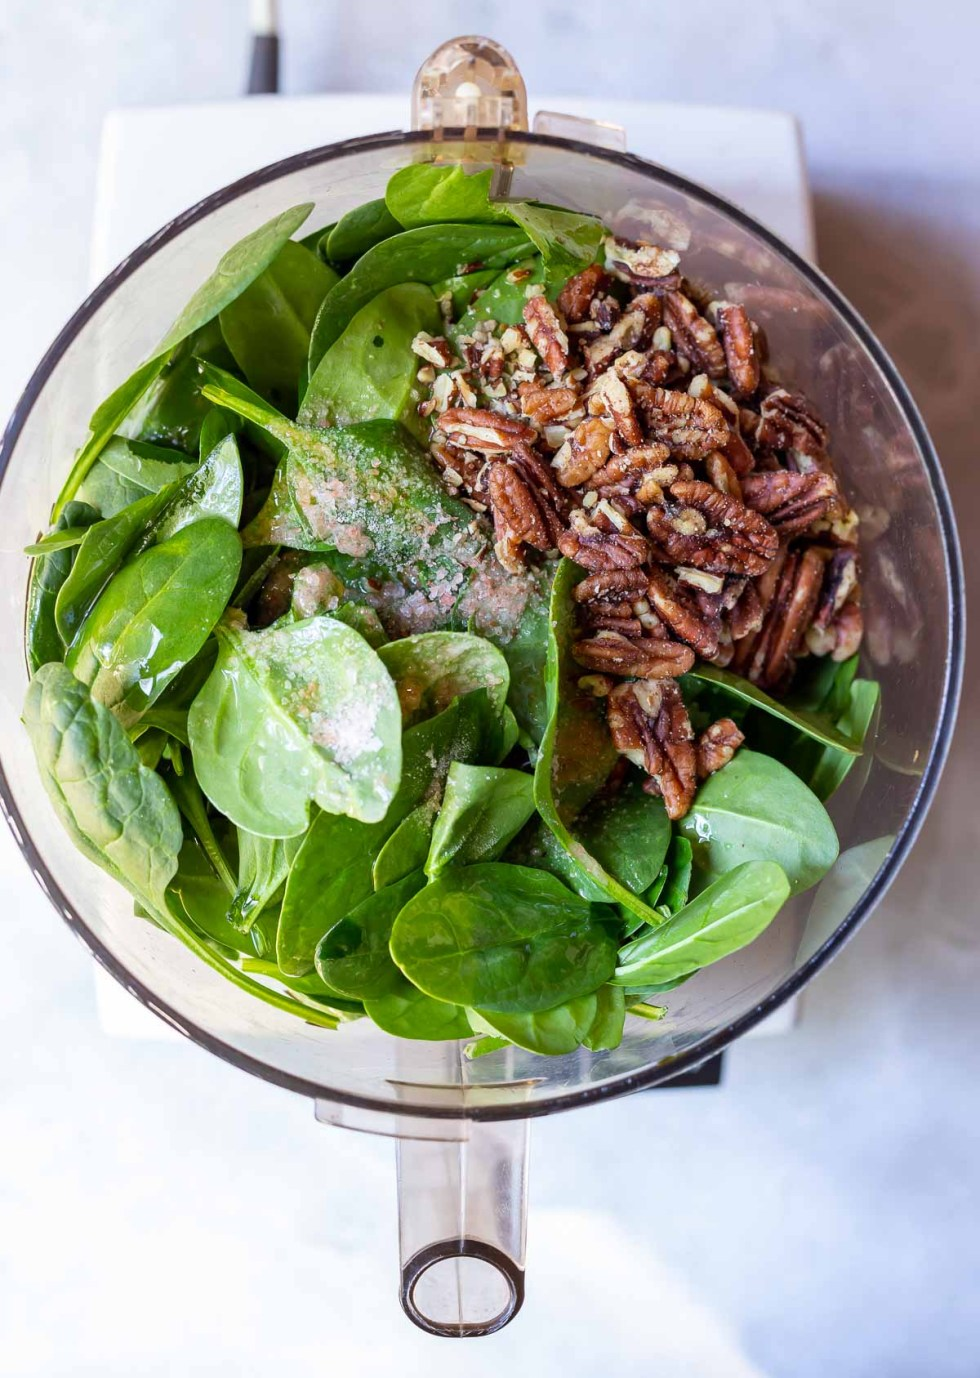 spinach pesto ingredients in food processor